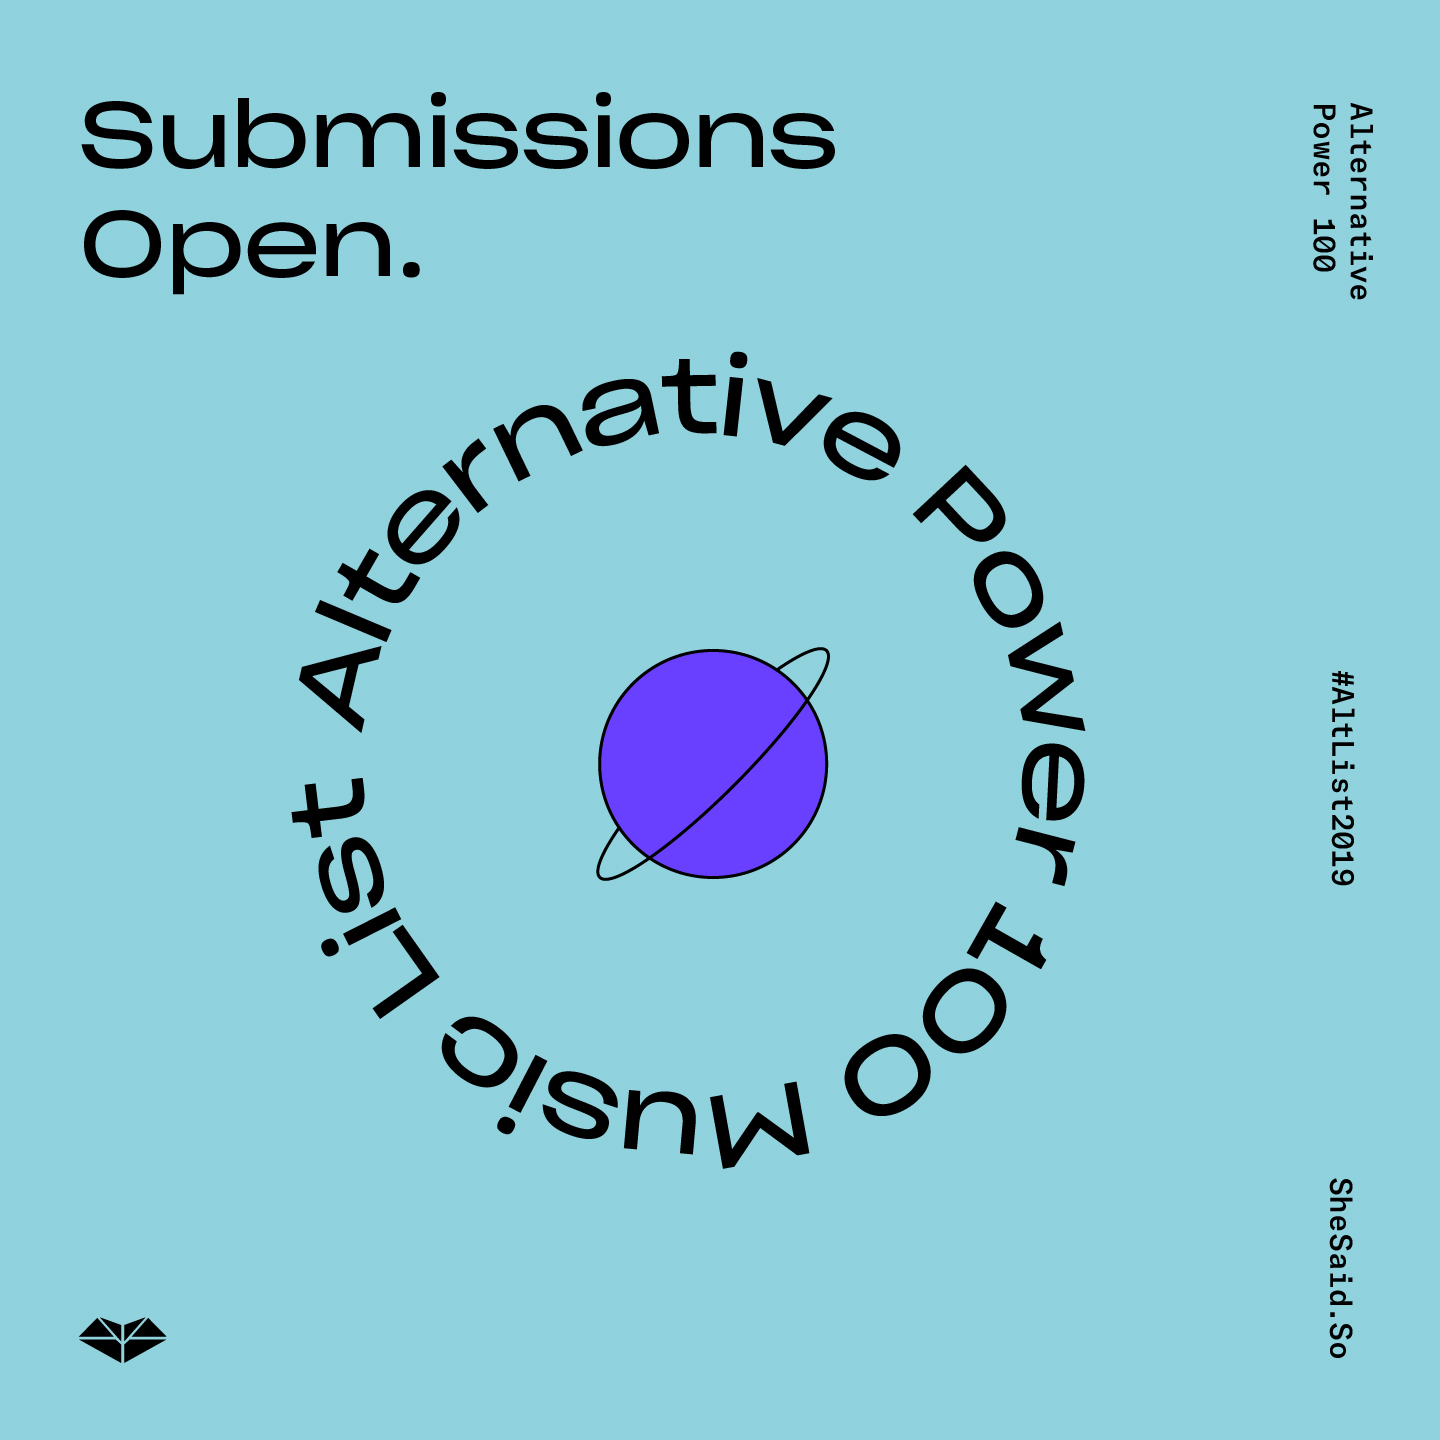 SubmissionsOpen-100.jpg